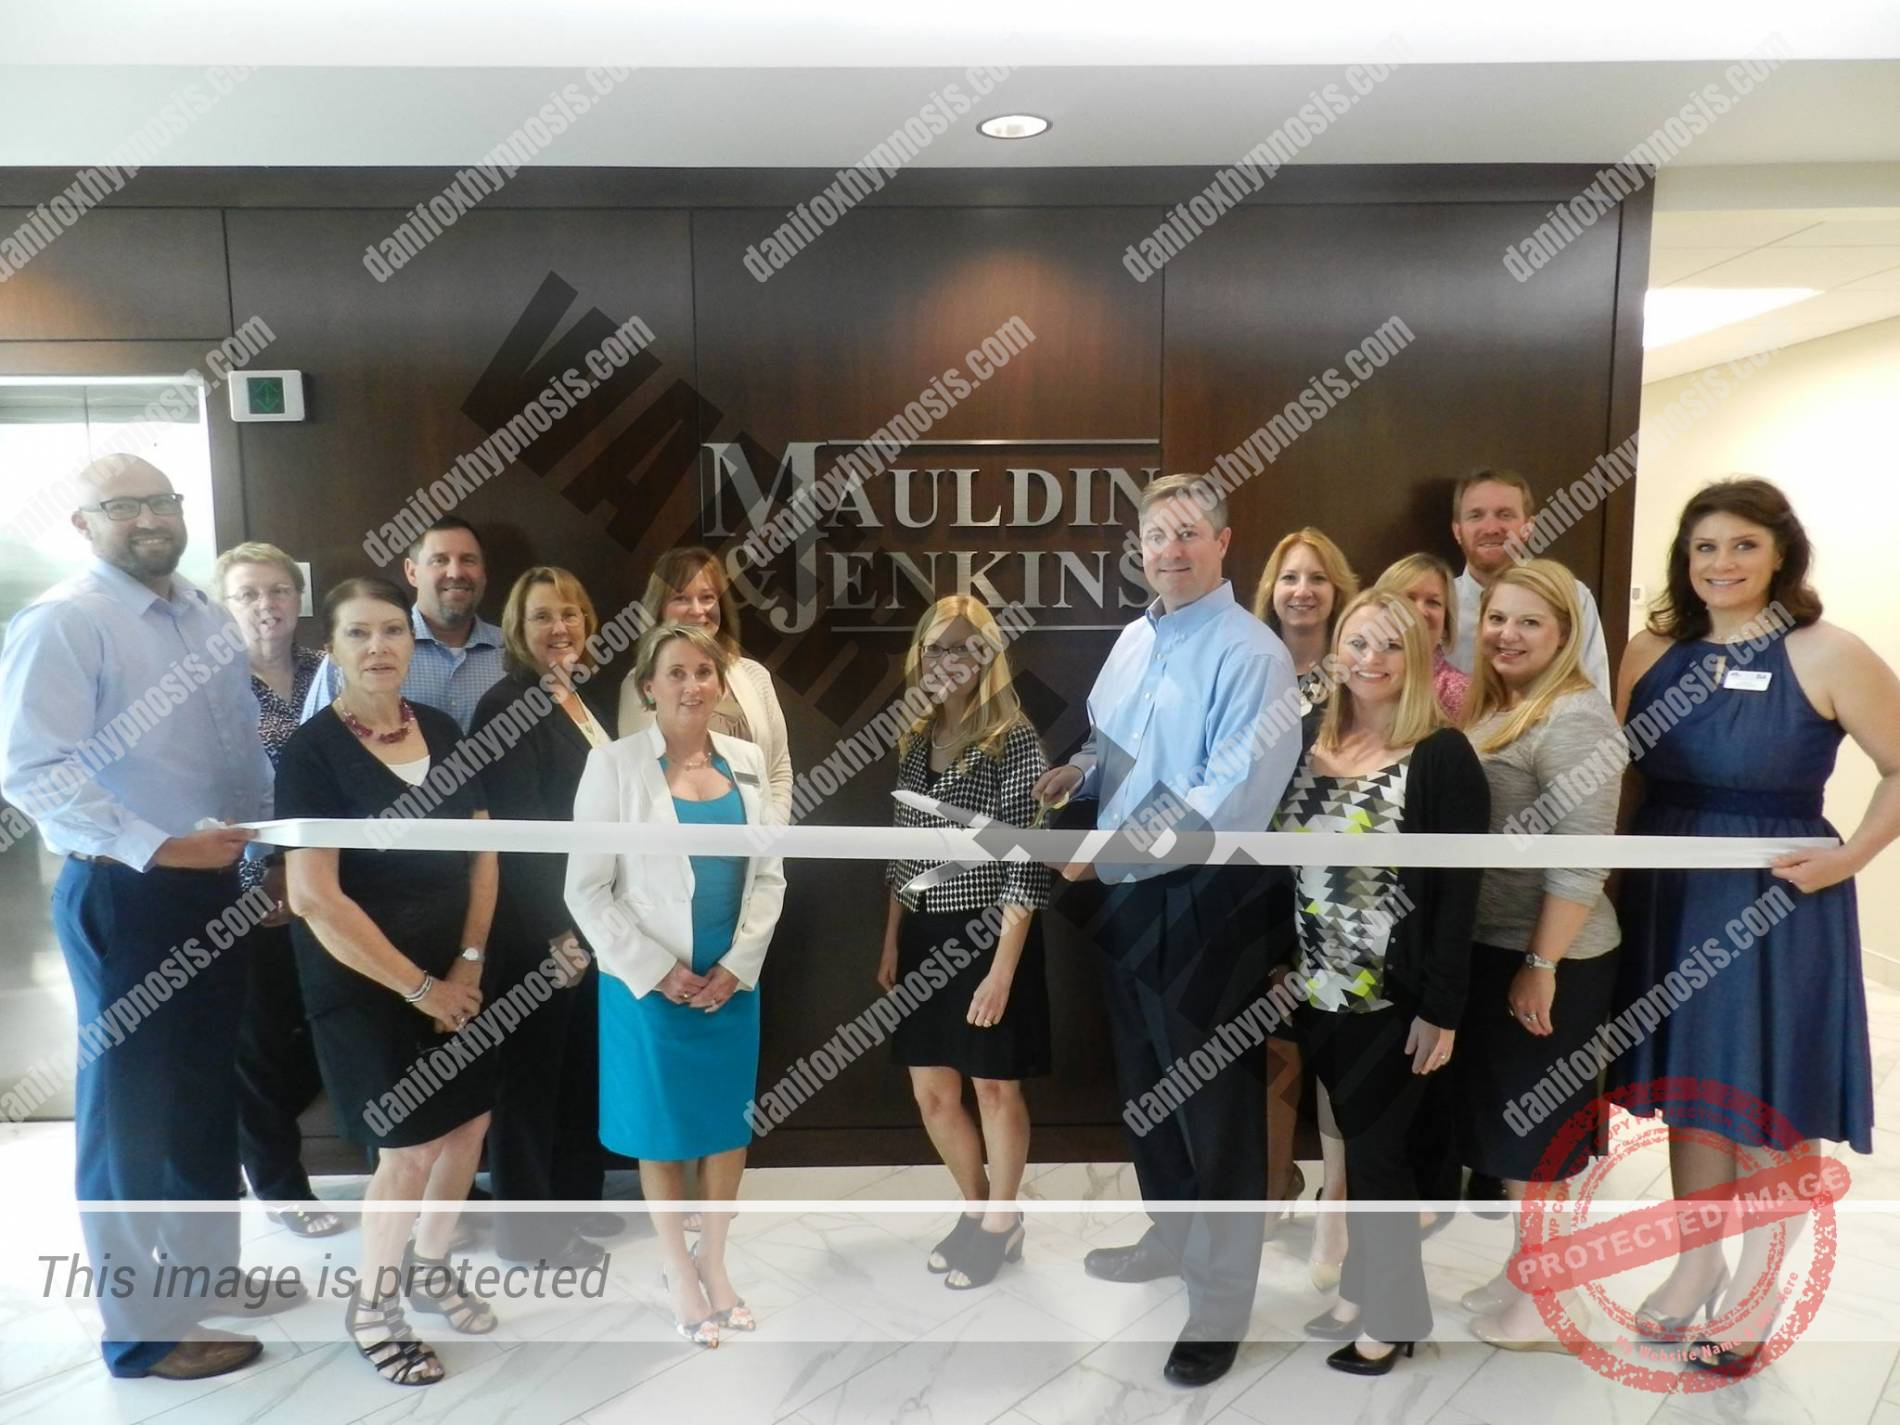 2016 Mauldin & Jenkins Ribbon Cutting